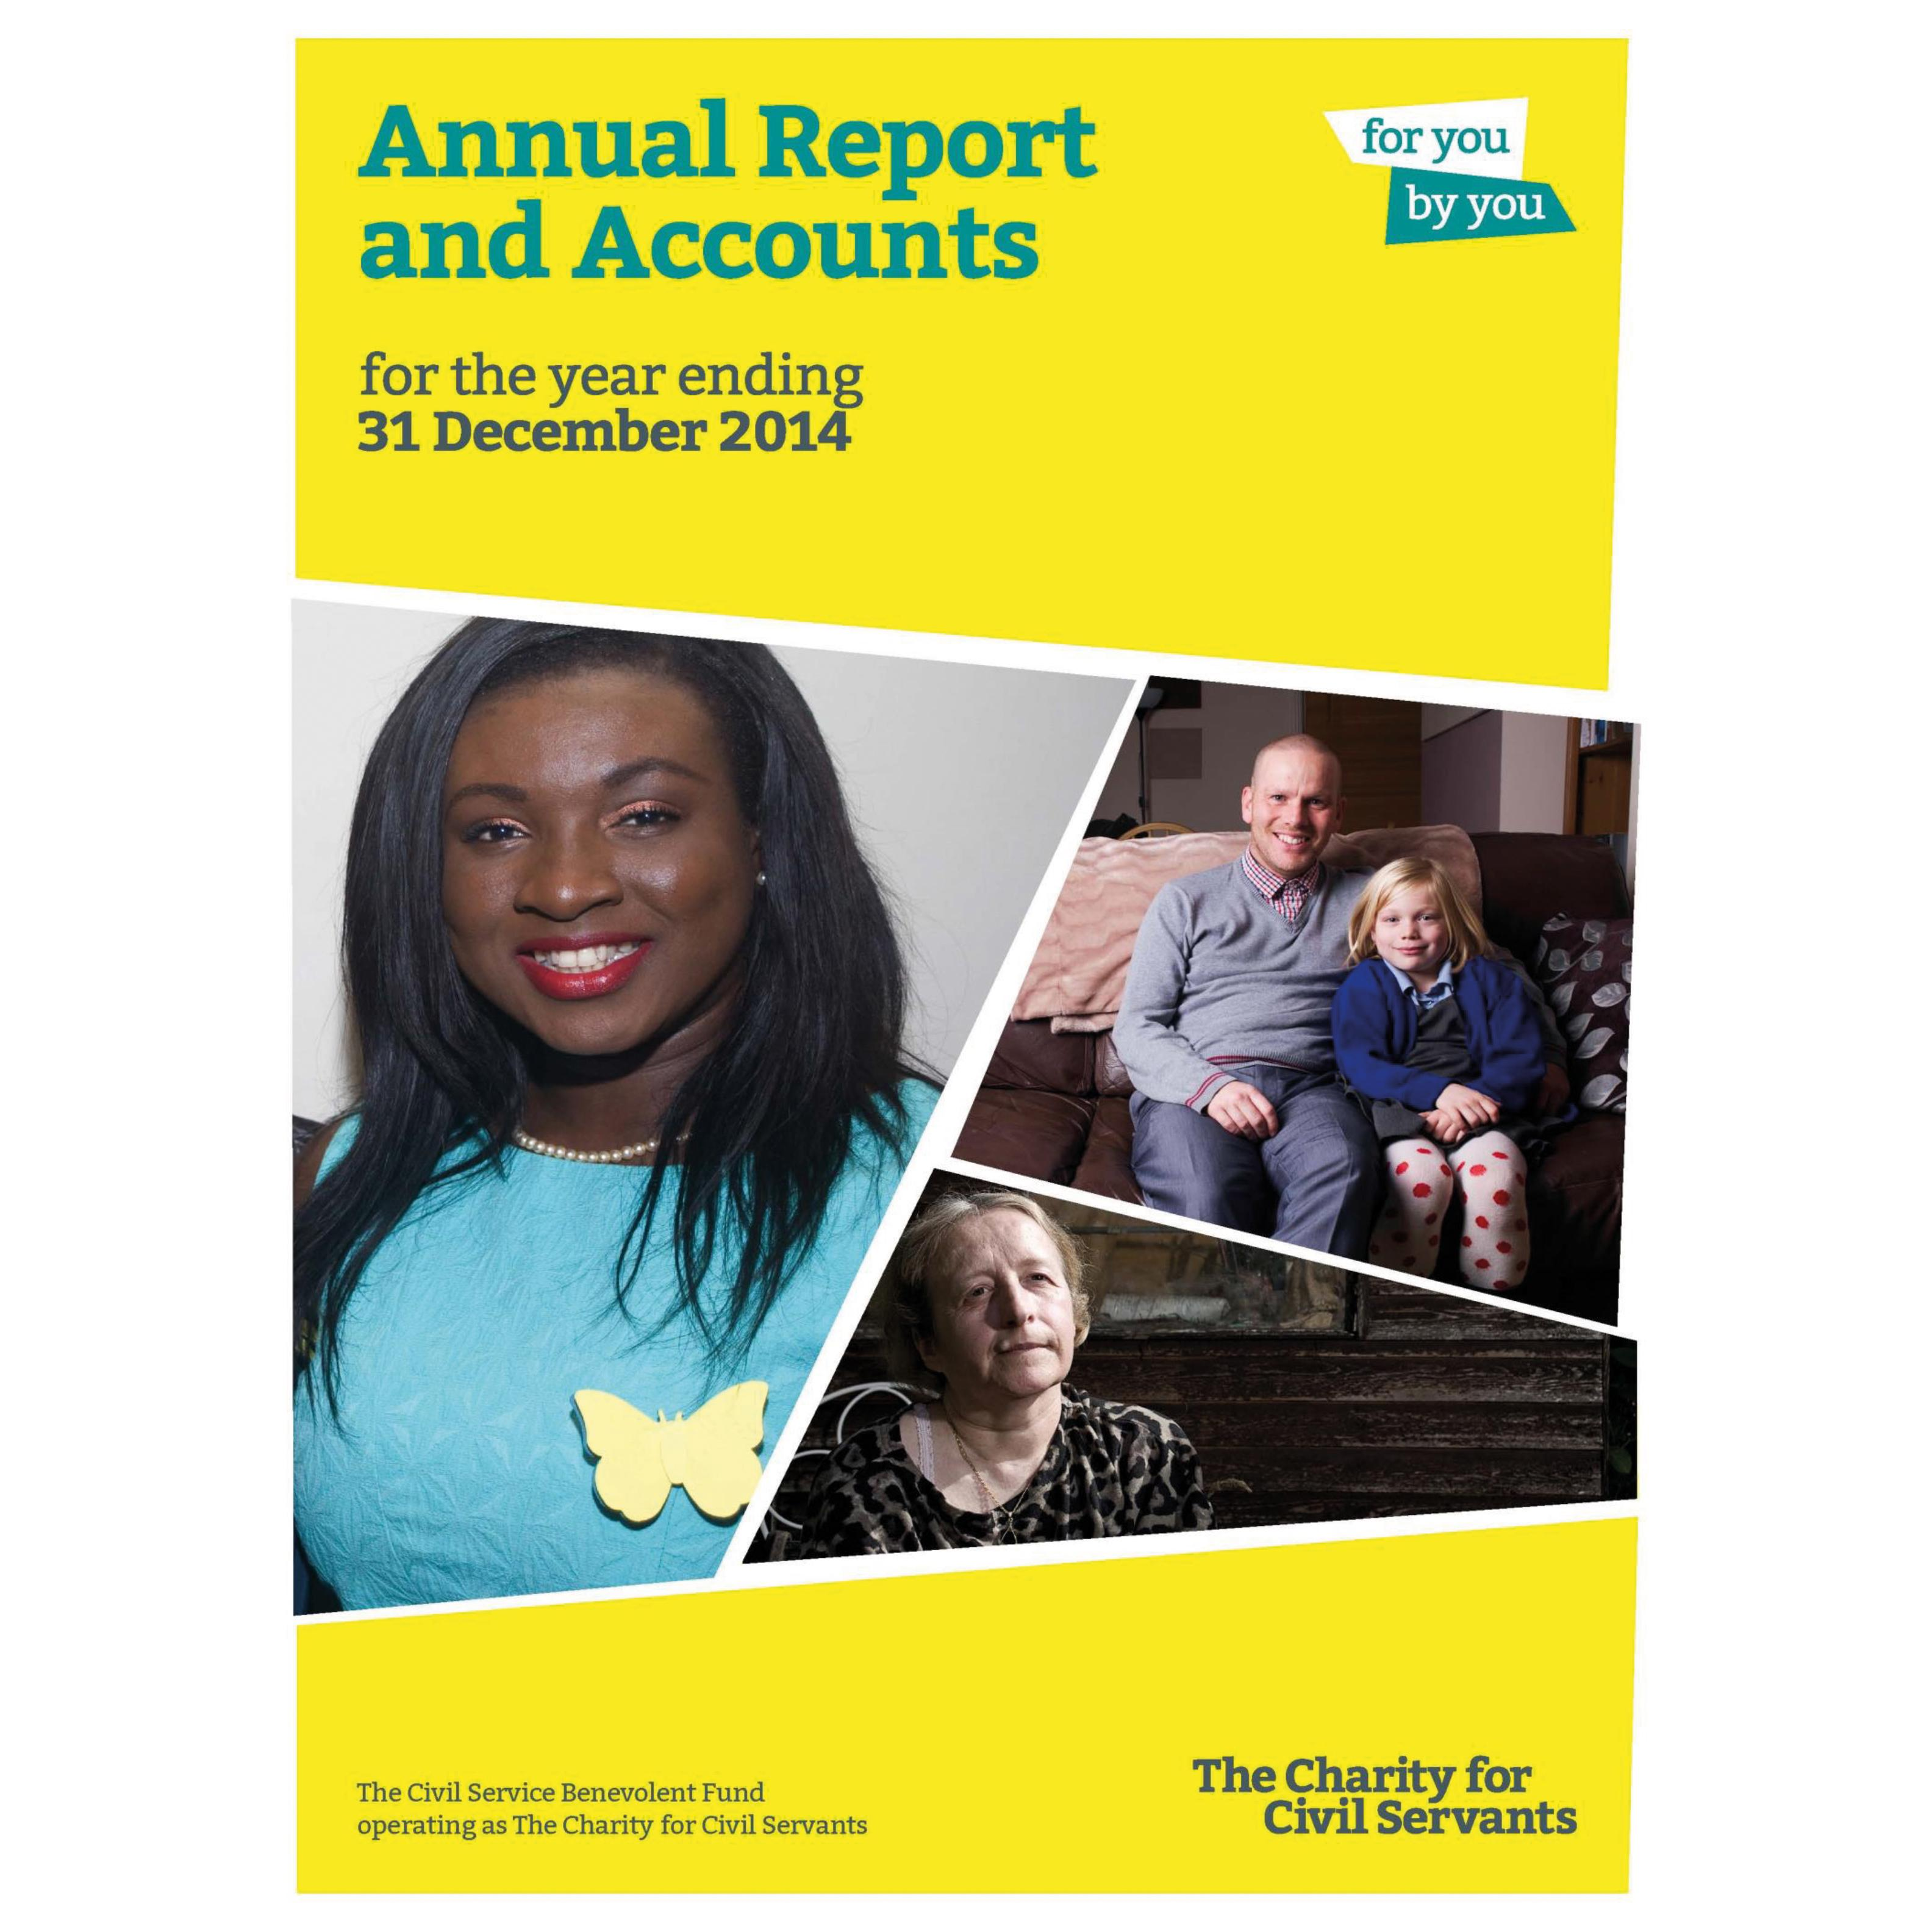 Annual Report and Accounts 2014